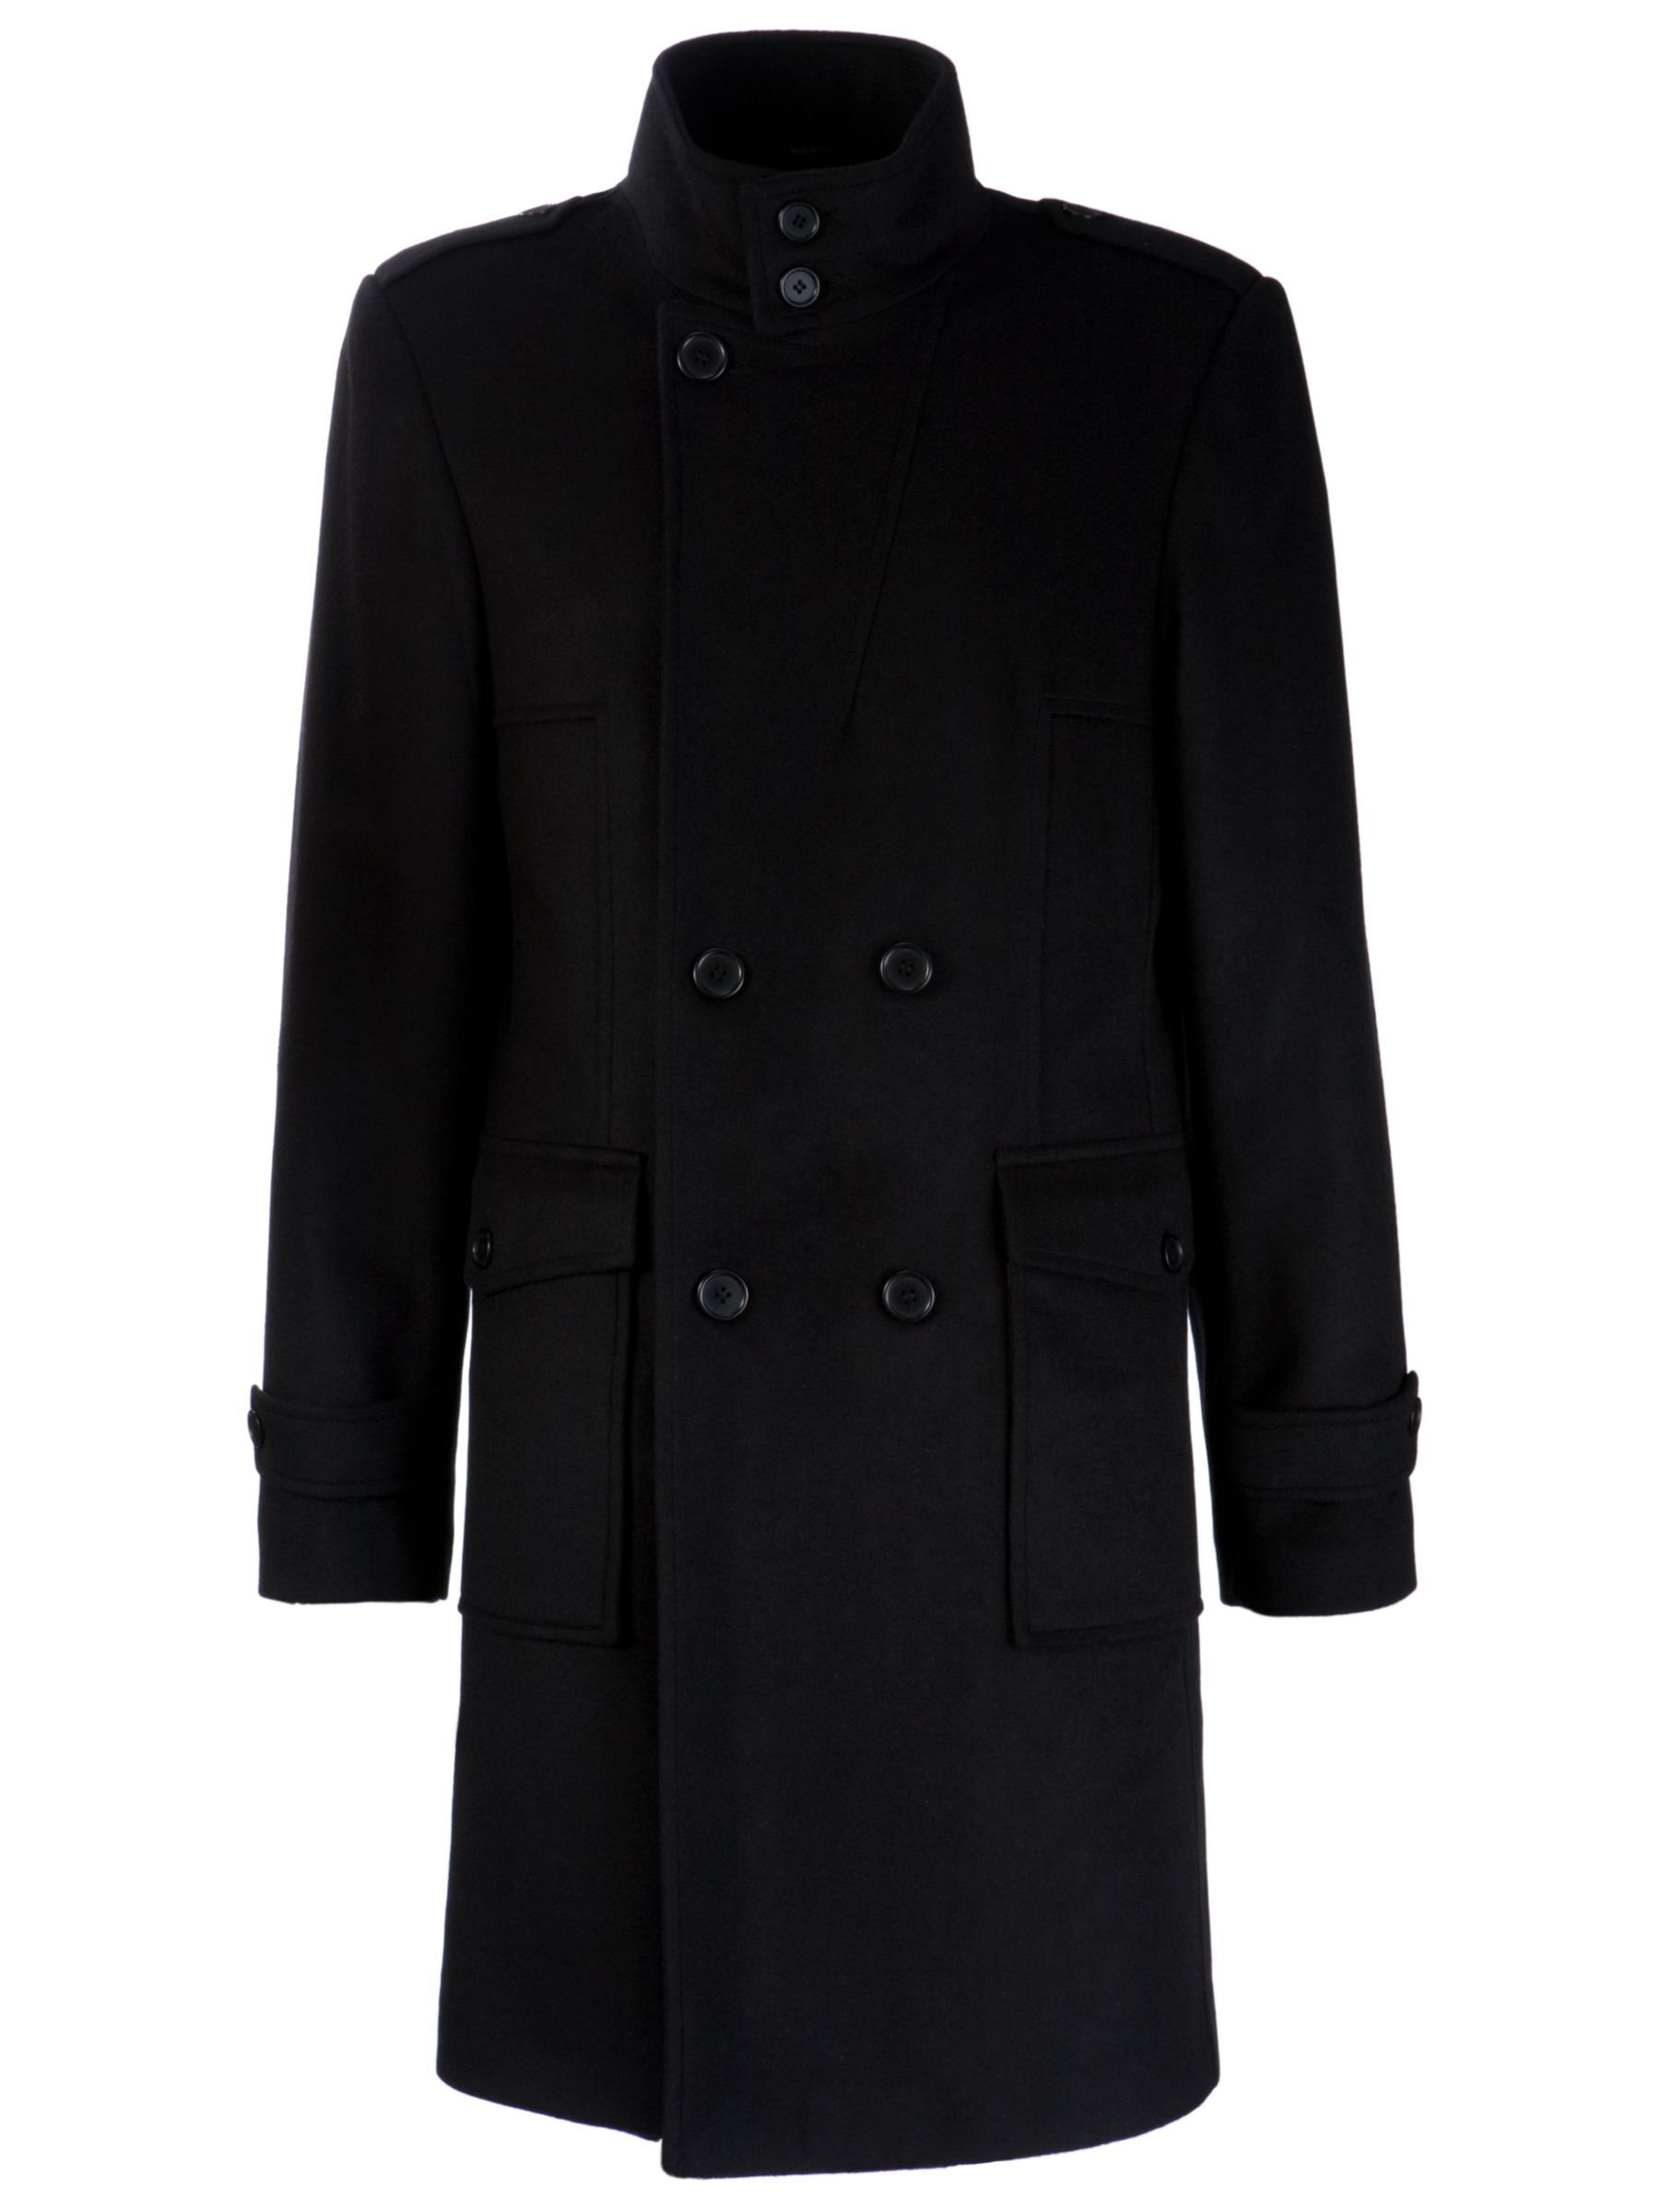 COLLECTION, John Lewis Men Double Breasted Trench Coat, Black at John Lewis